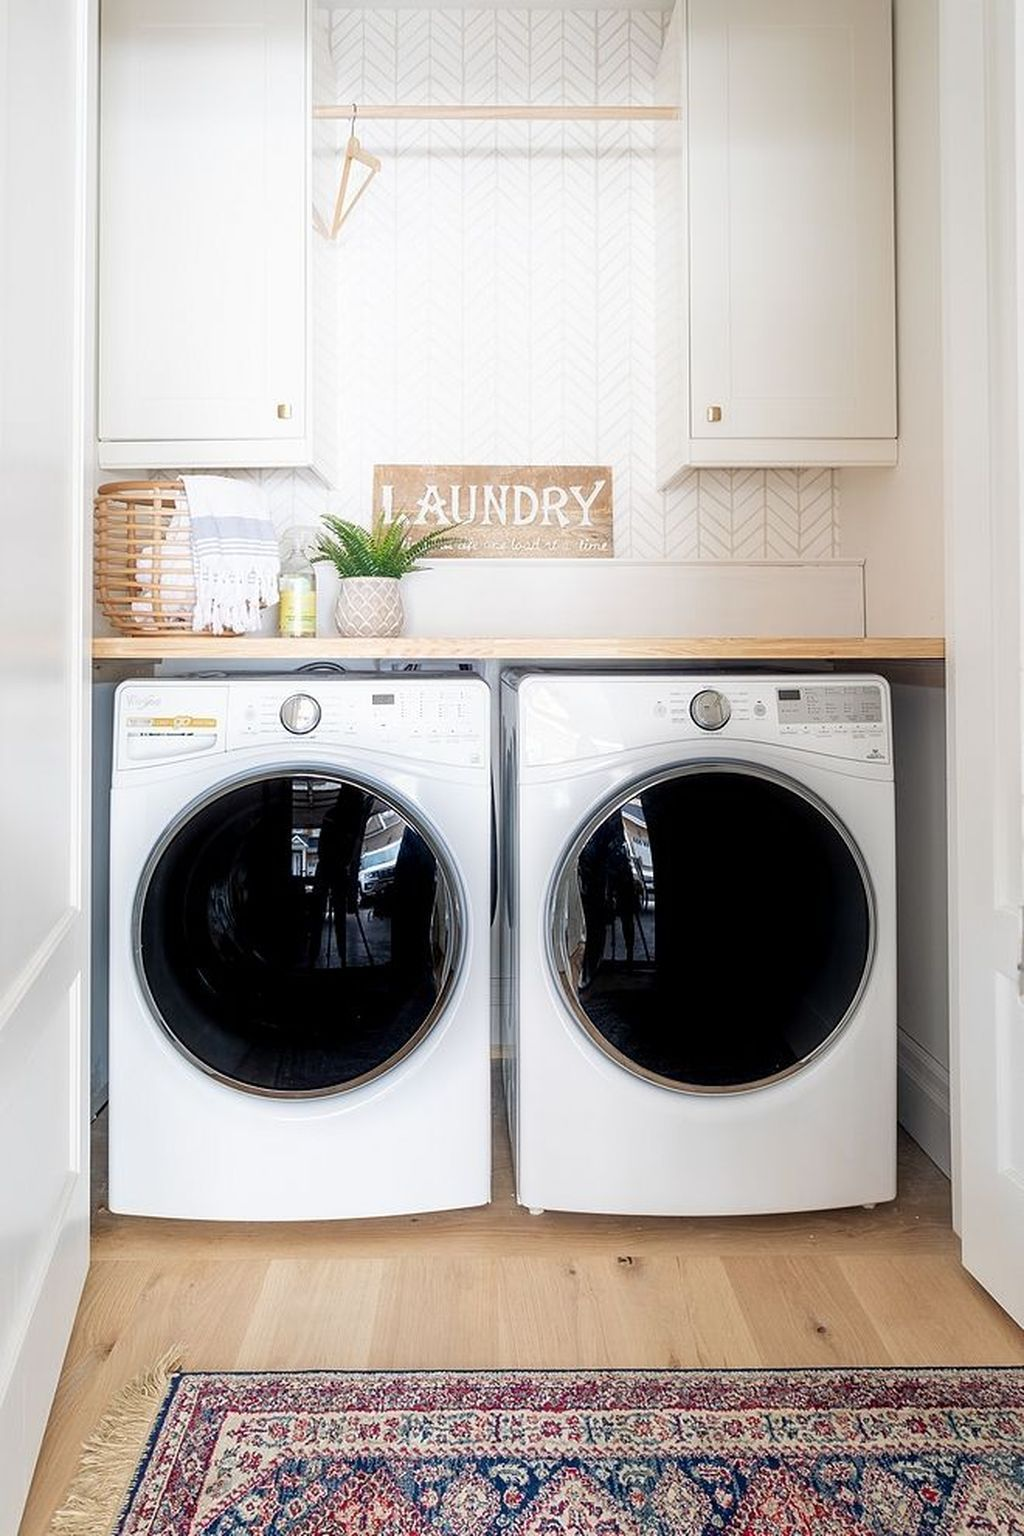 34 Inspiring Small Laundry Room Design And Decor Ideas Laundry In Bathroom Laundry Room Renovation Laundry Room